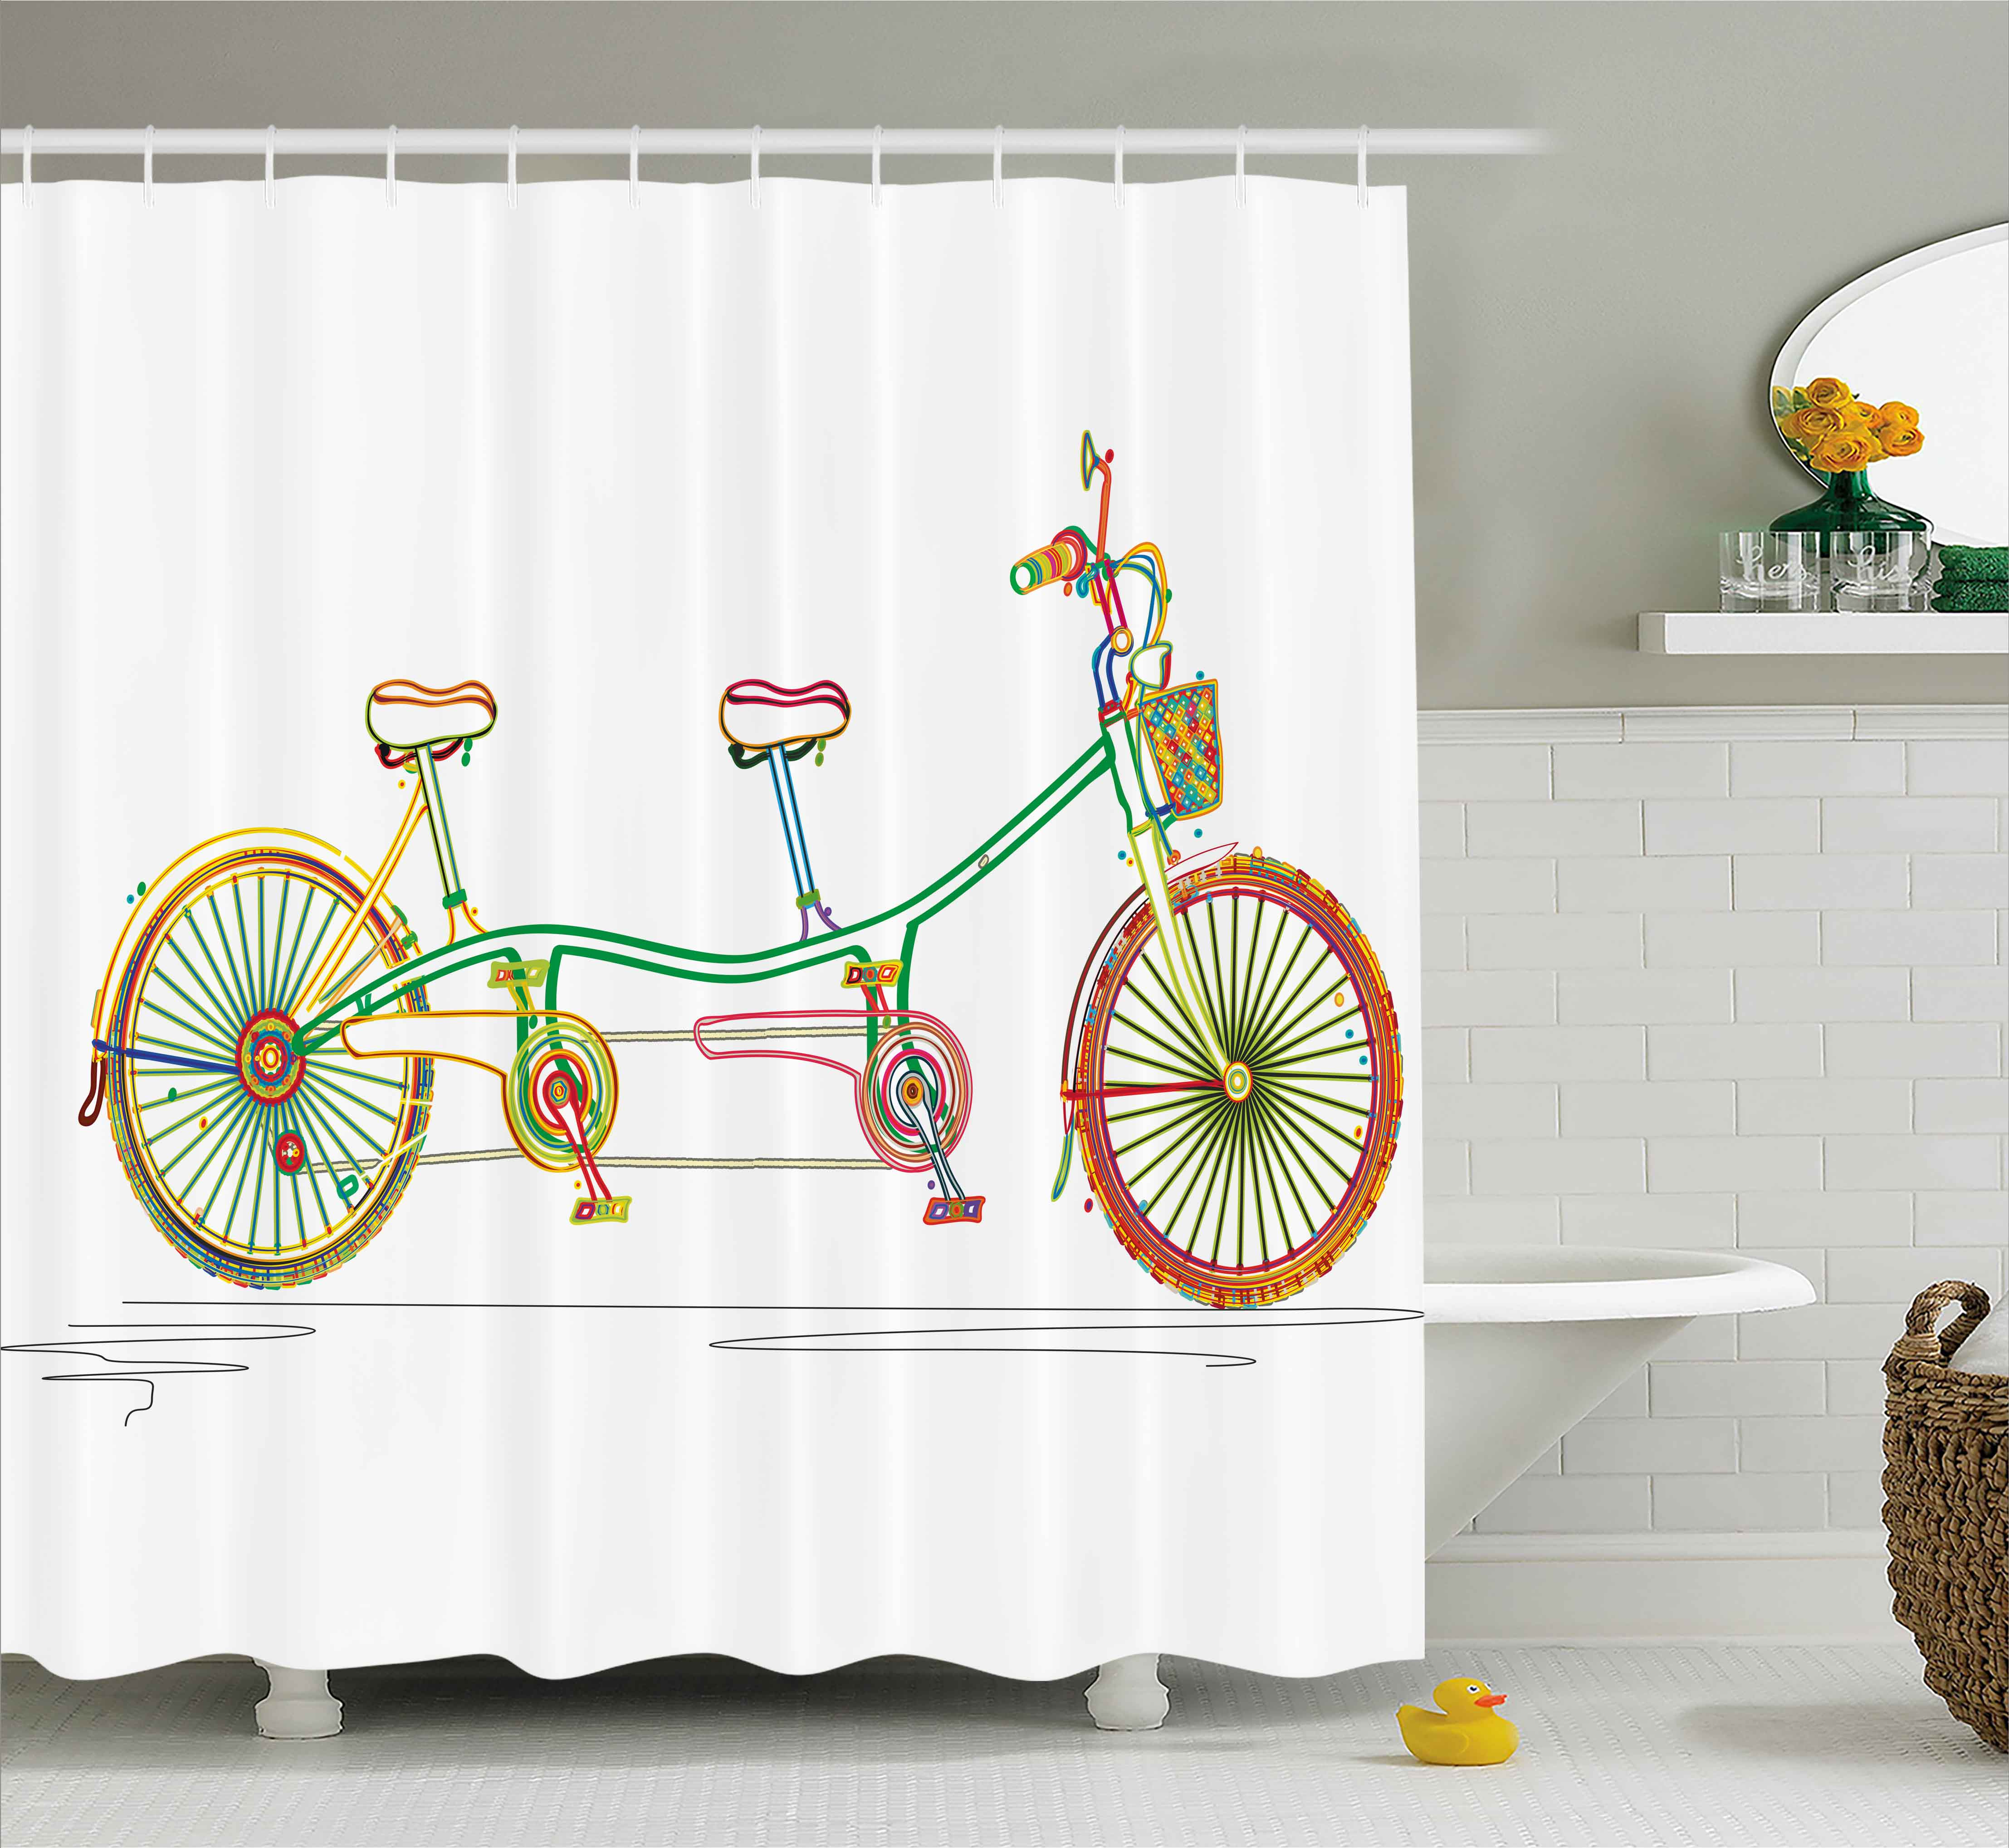 Decorative Shower Curtain, Colorful Tandem Bicycle Design on White Background Pattern Clipart Style Print, Fabric Bathroom Set with Hooks, 69W X 70L Inches, Multicolor, by Ambesonne